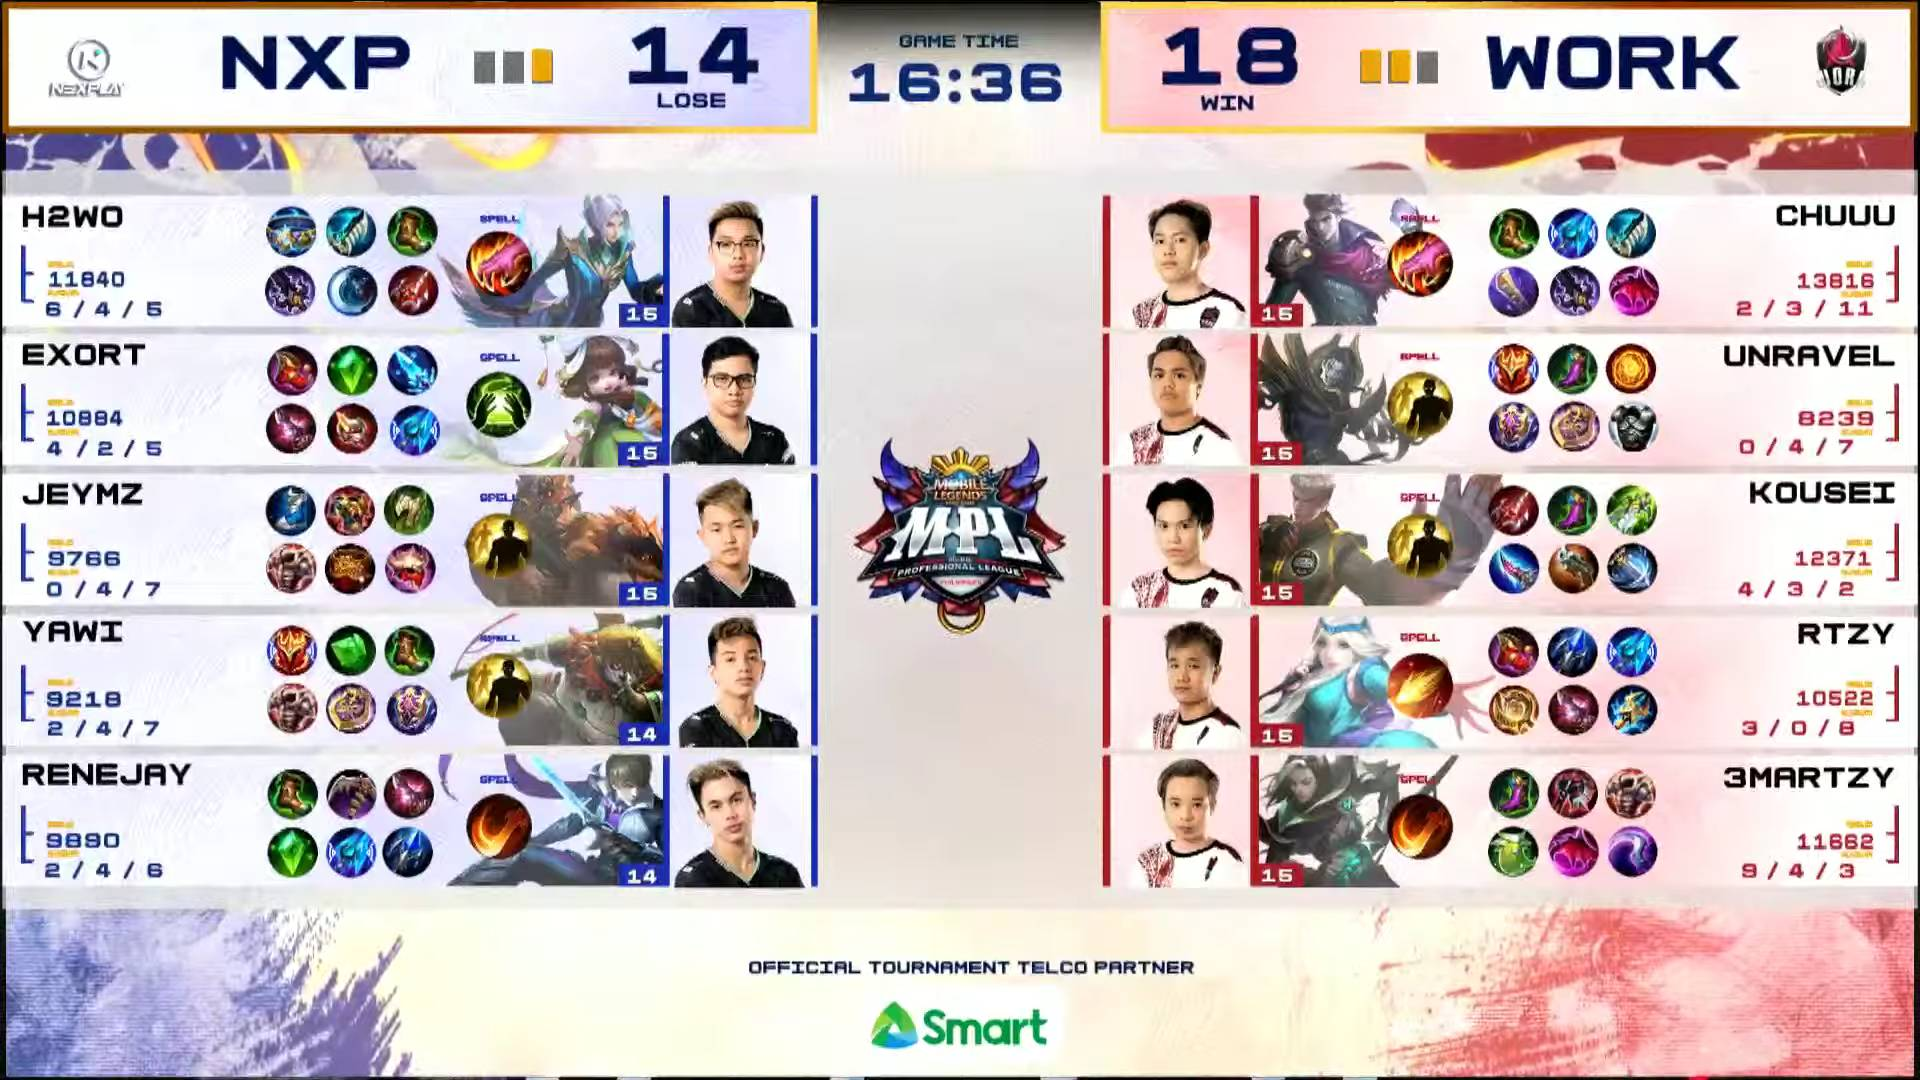 MPL-PH-7-Work-Auster-def-NXP-Game-3 Kousei's Esmeralda takes charge in clincher as Work Auster boots out Nexplay in MPL ESports Mobile Legends MPL-PH News  - philippine sports news